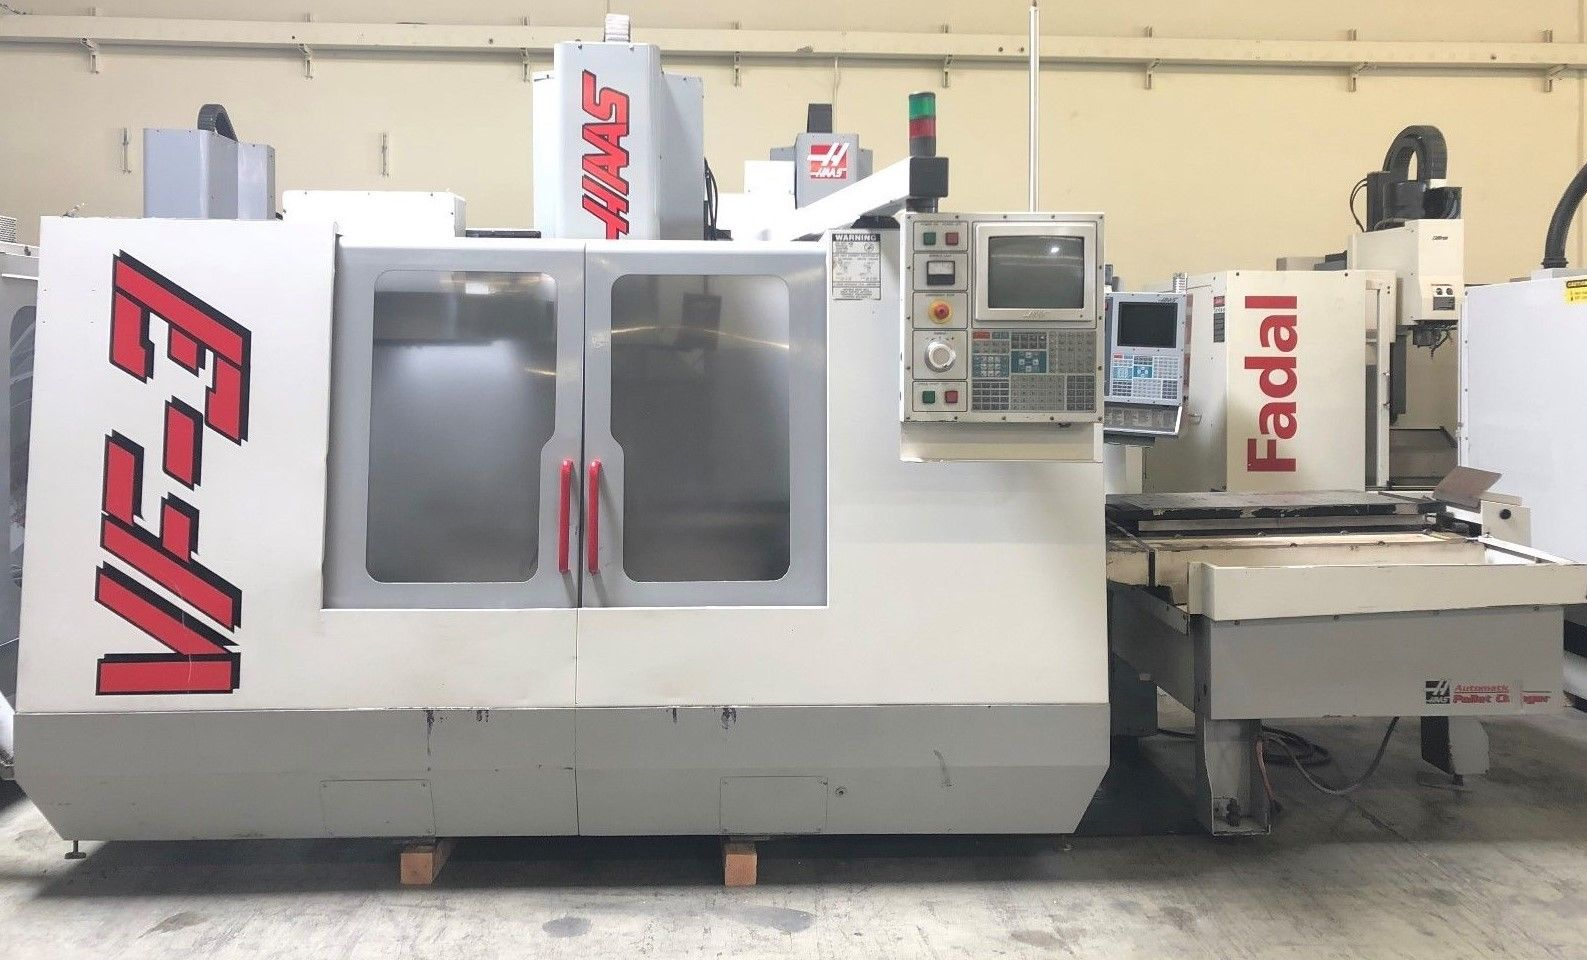 HAAS VF-3 APC Vertical Machining Center - MachineStation Haas Vf Wiring Diagram on haas vf-3yt, haas vf-2tr, haas vf-4, haas vm-3, haas vf-4ss, haas 5 axis,